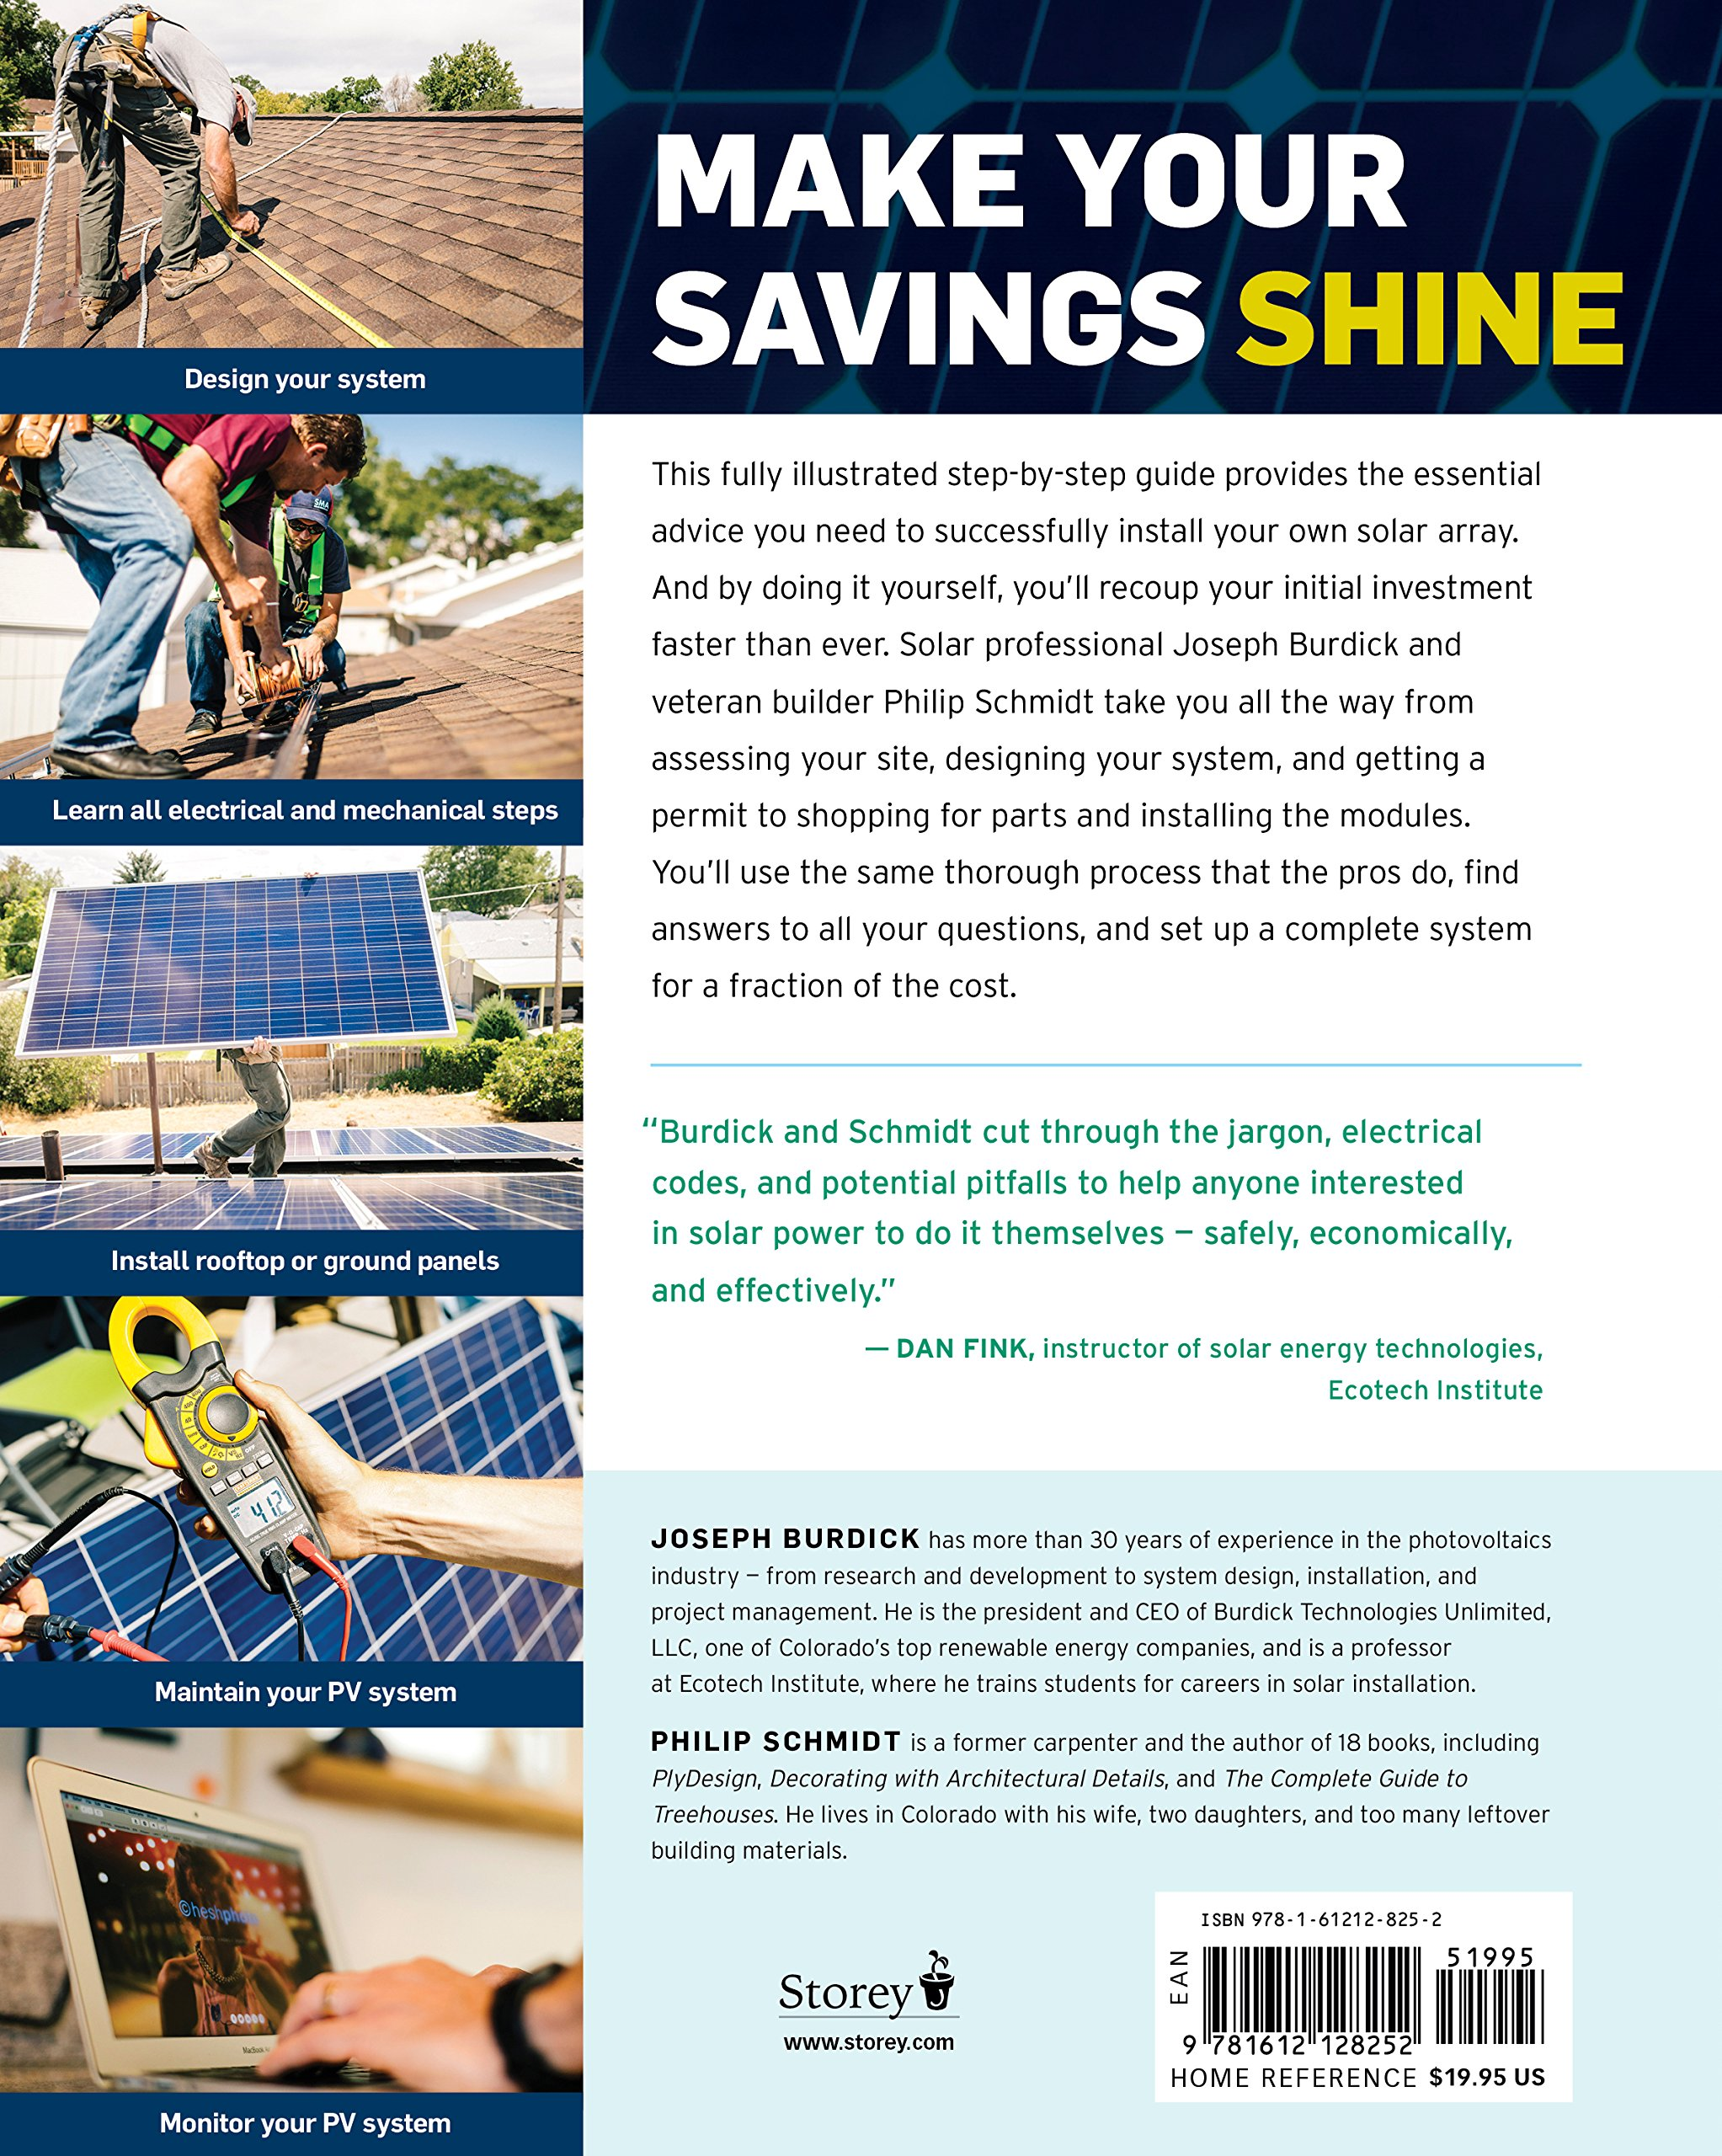 install your own solar panels designing and installing a photovoltaic system to power your home joseph burdick philip schmidt 9781612128252 amazoncom. Interior Design Ideas. Home Design Ideas